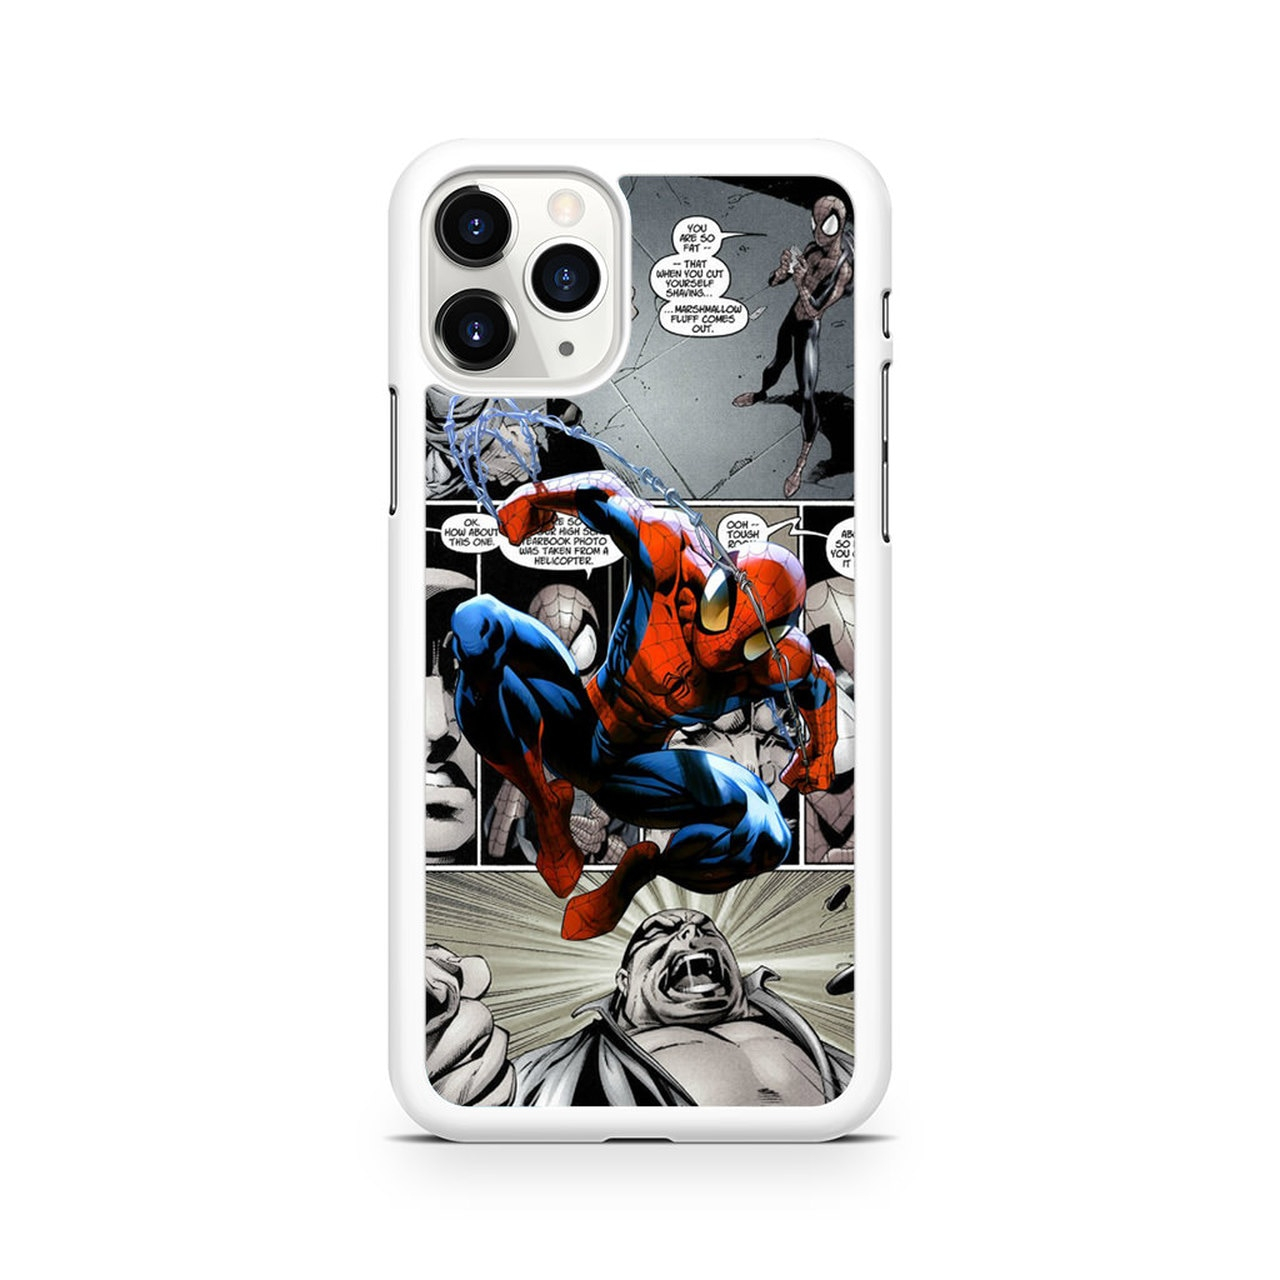 spiderman ics wallpaper iphone 11 pro max case